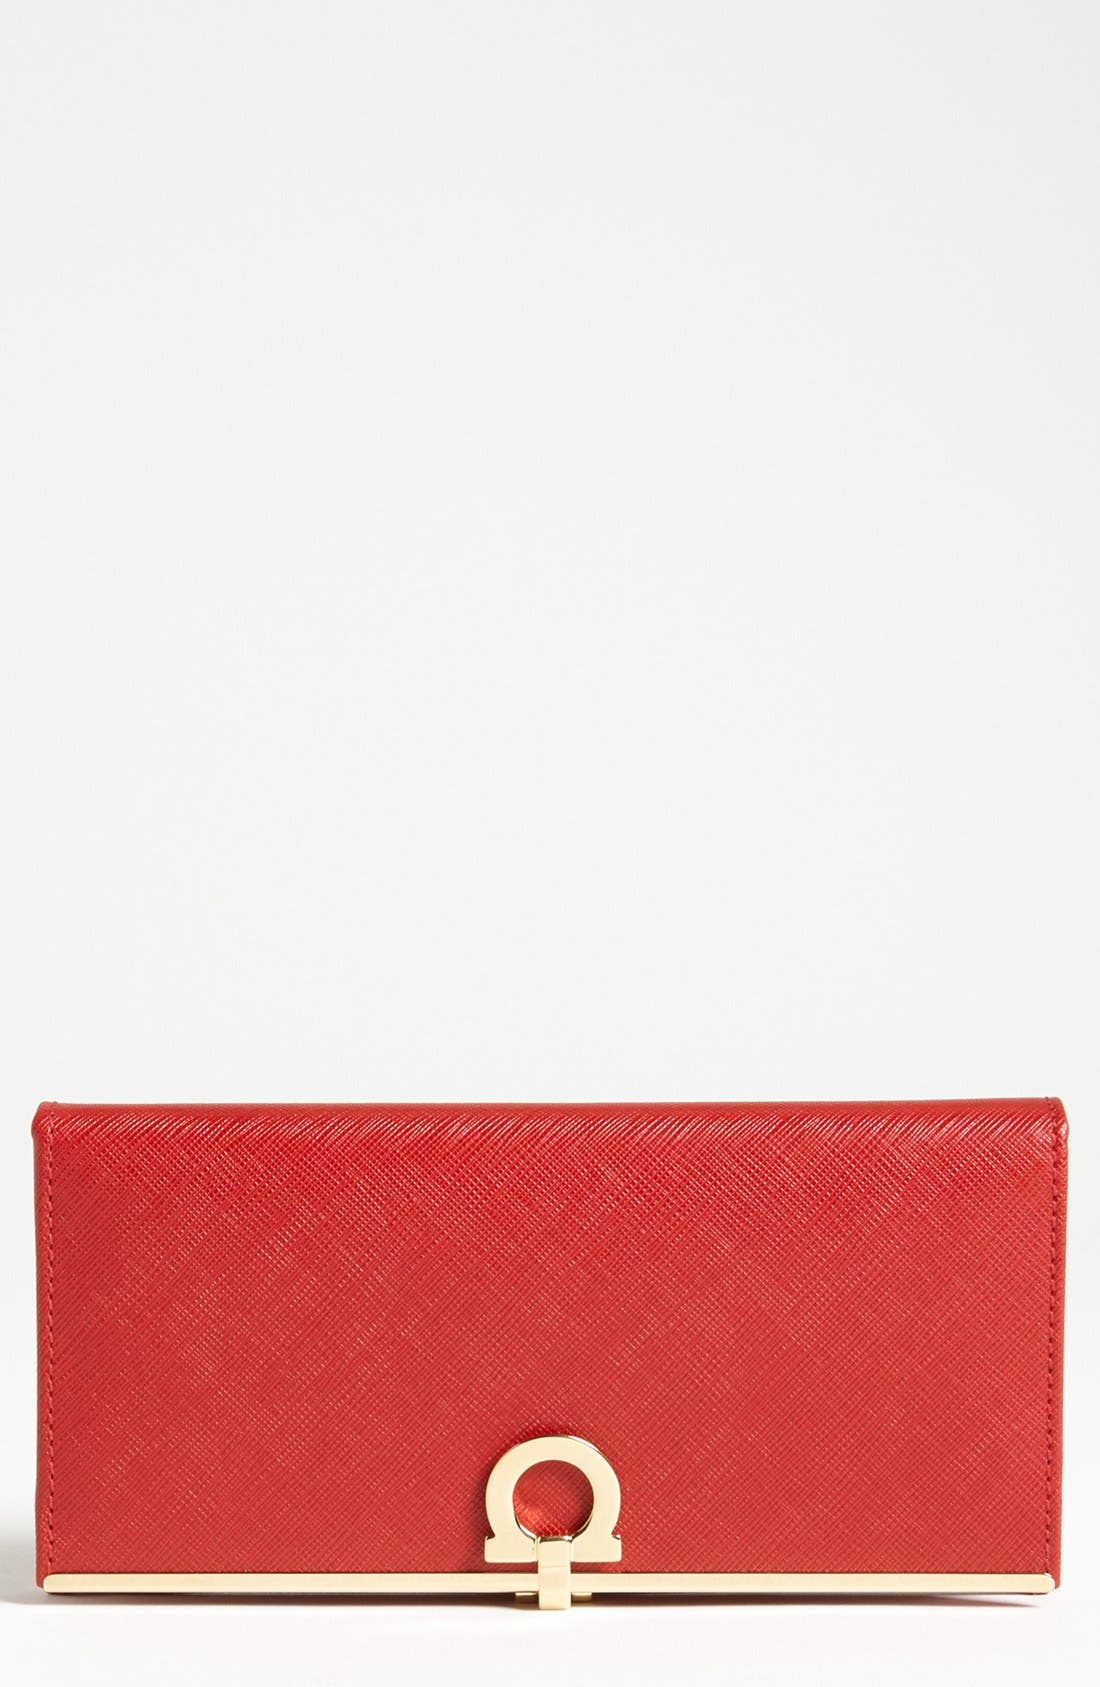 Salvatore Ferragamo Saffiano Leather Wallet